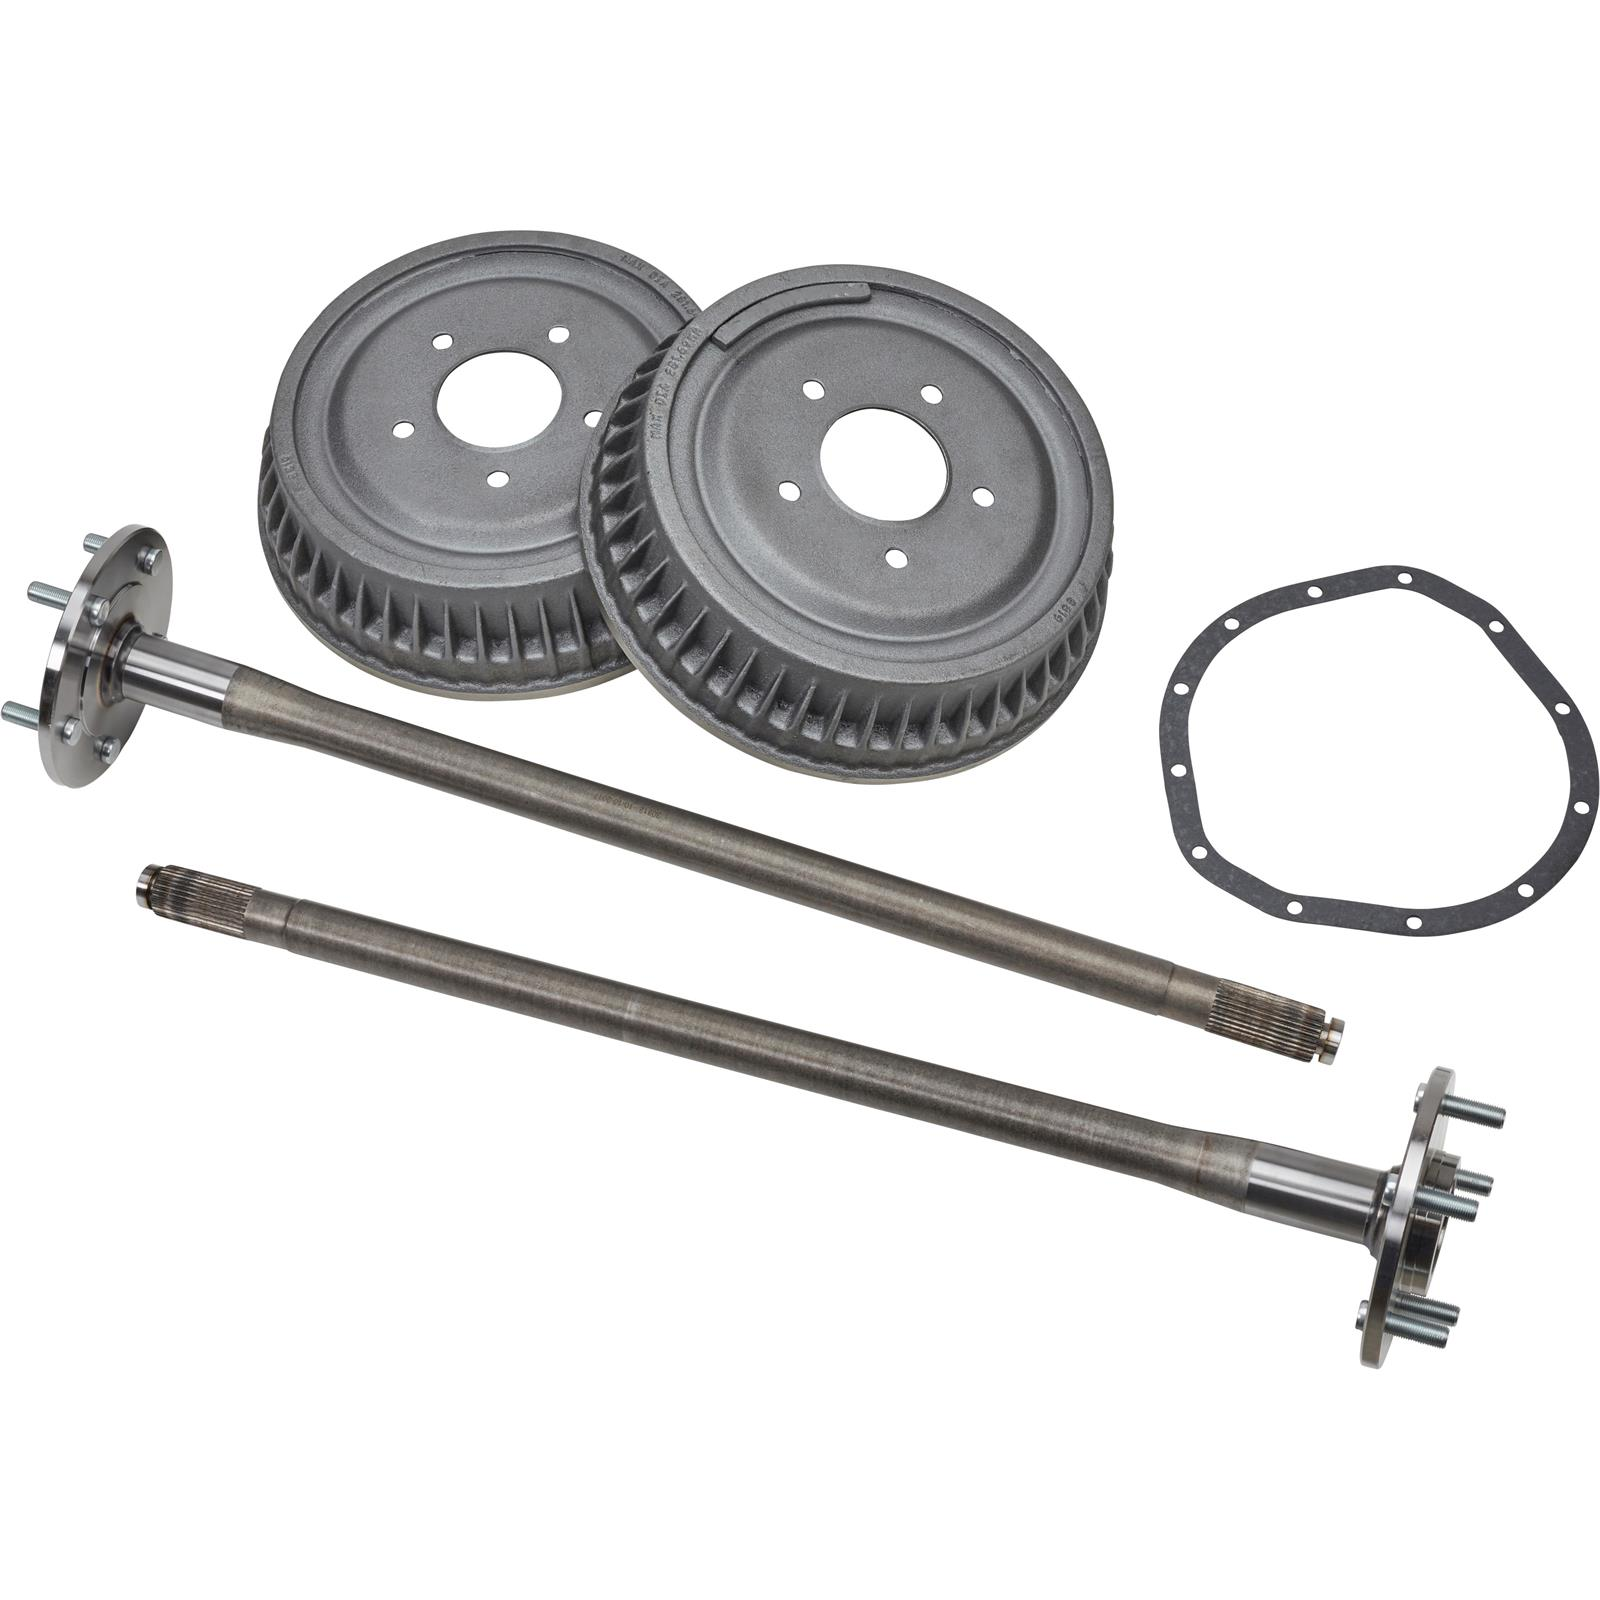 1965 1969 Chevy Truck 5 Lug Rear Axle Conversion Kit